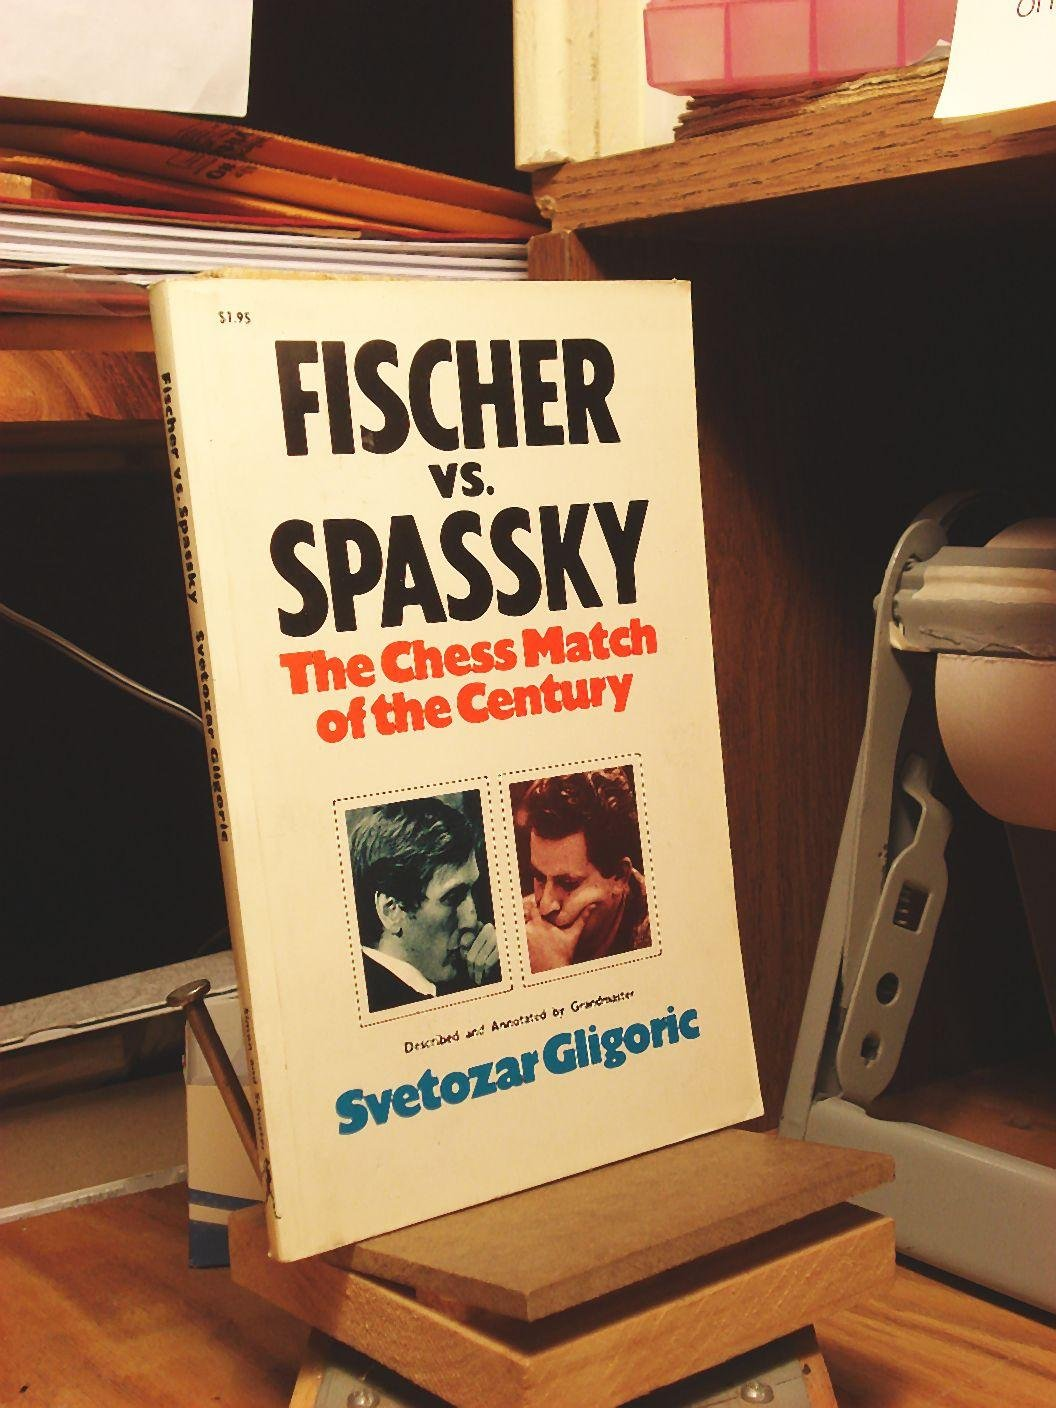 Fischer vs. Spassky: World Chess Championship Match, 1972, Gligoric, Svetozar